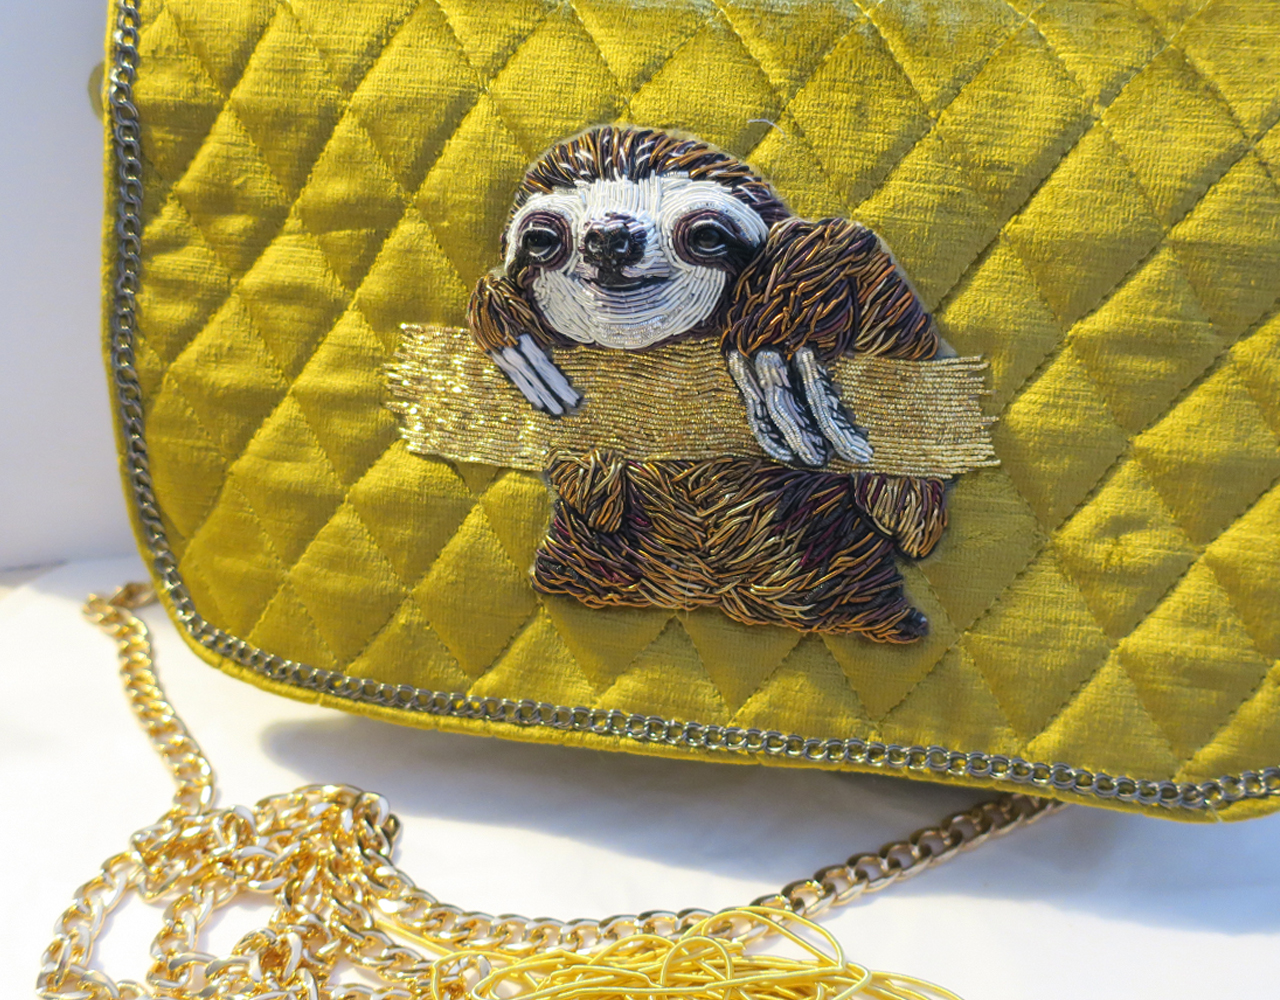 Goldwork Couture Hand Embroidered Sloth Bag.